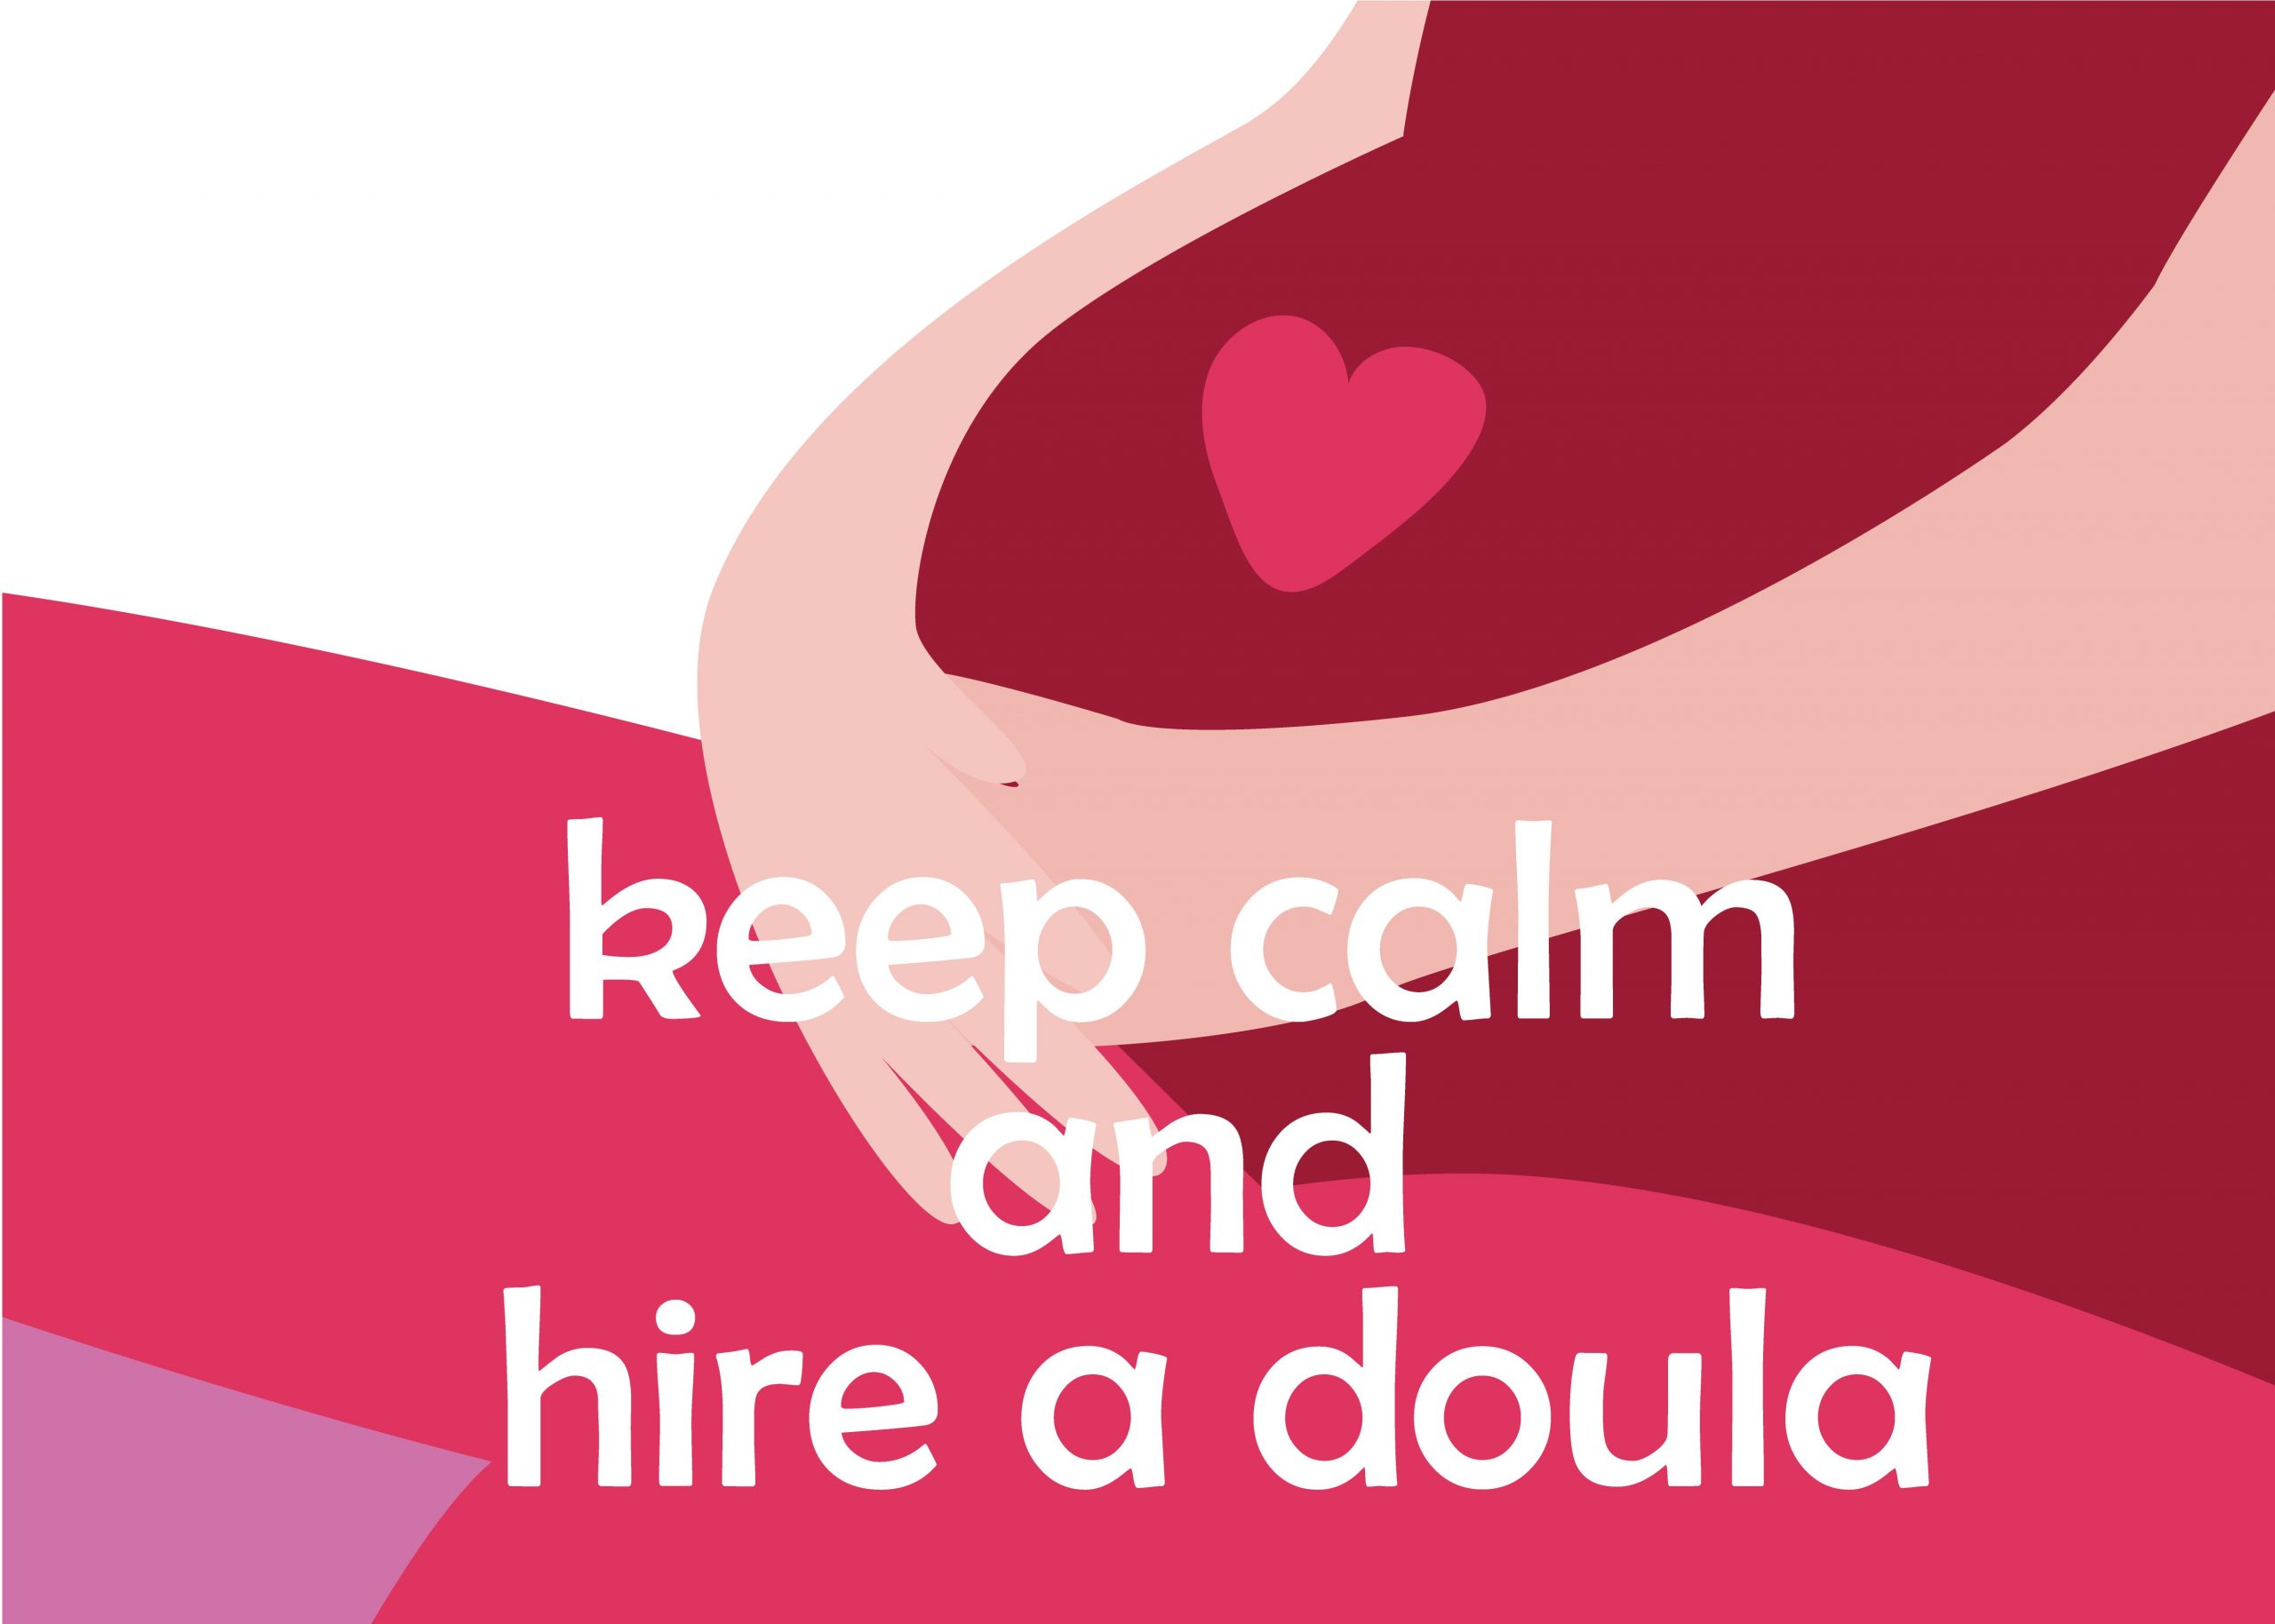 Picture saying keep calm and hire Silver Spring Doula support during Covid-19